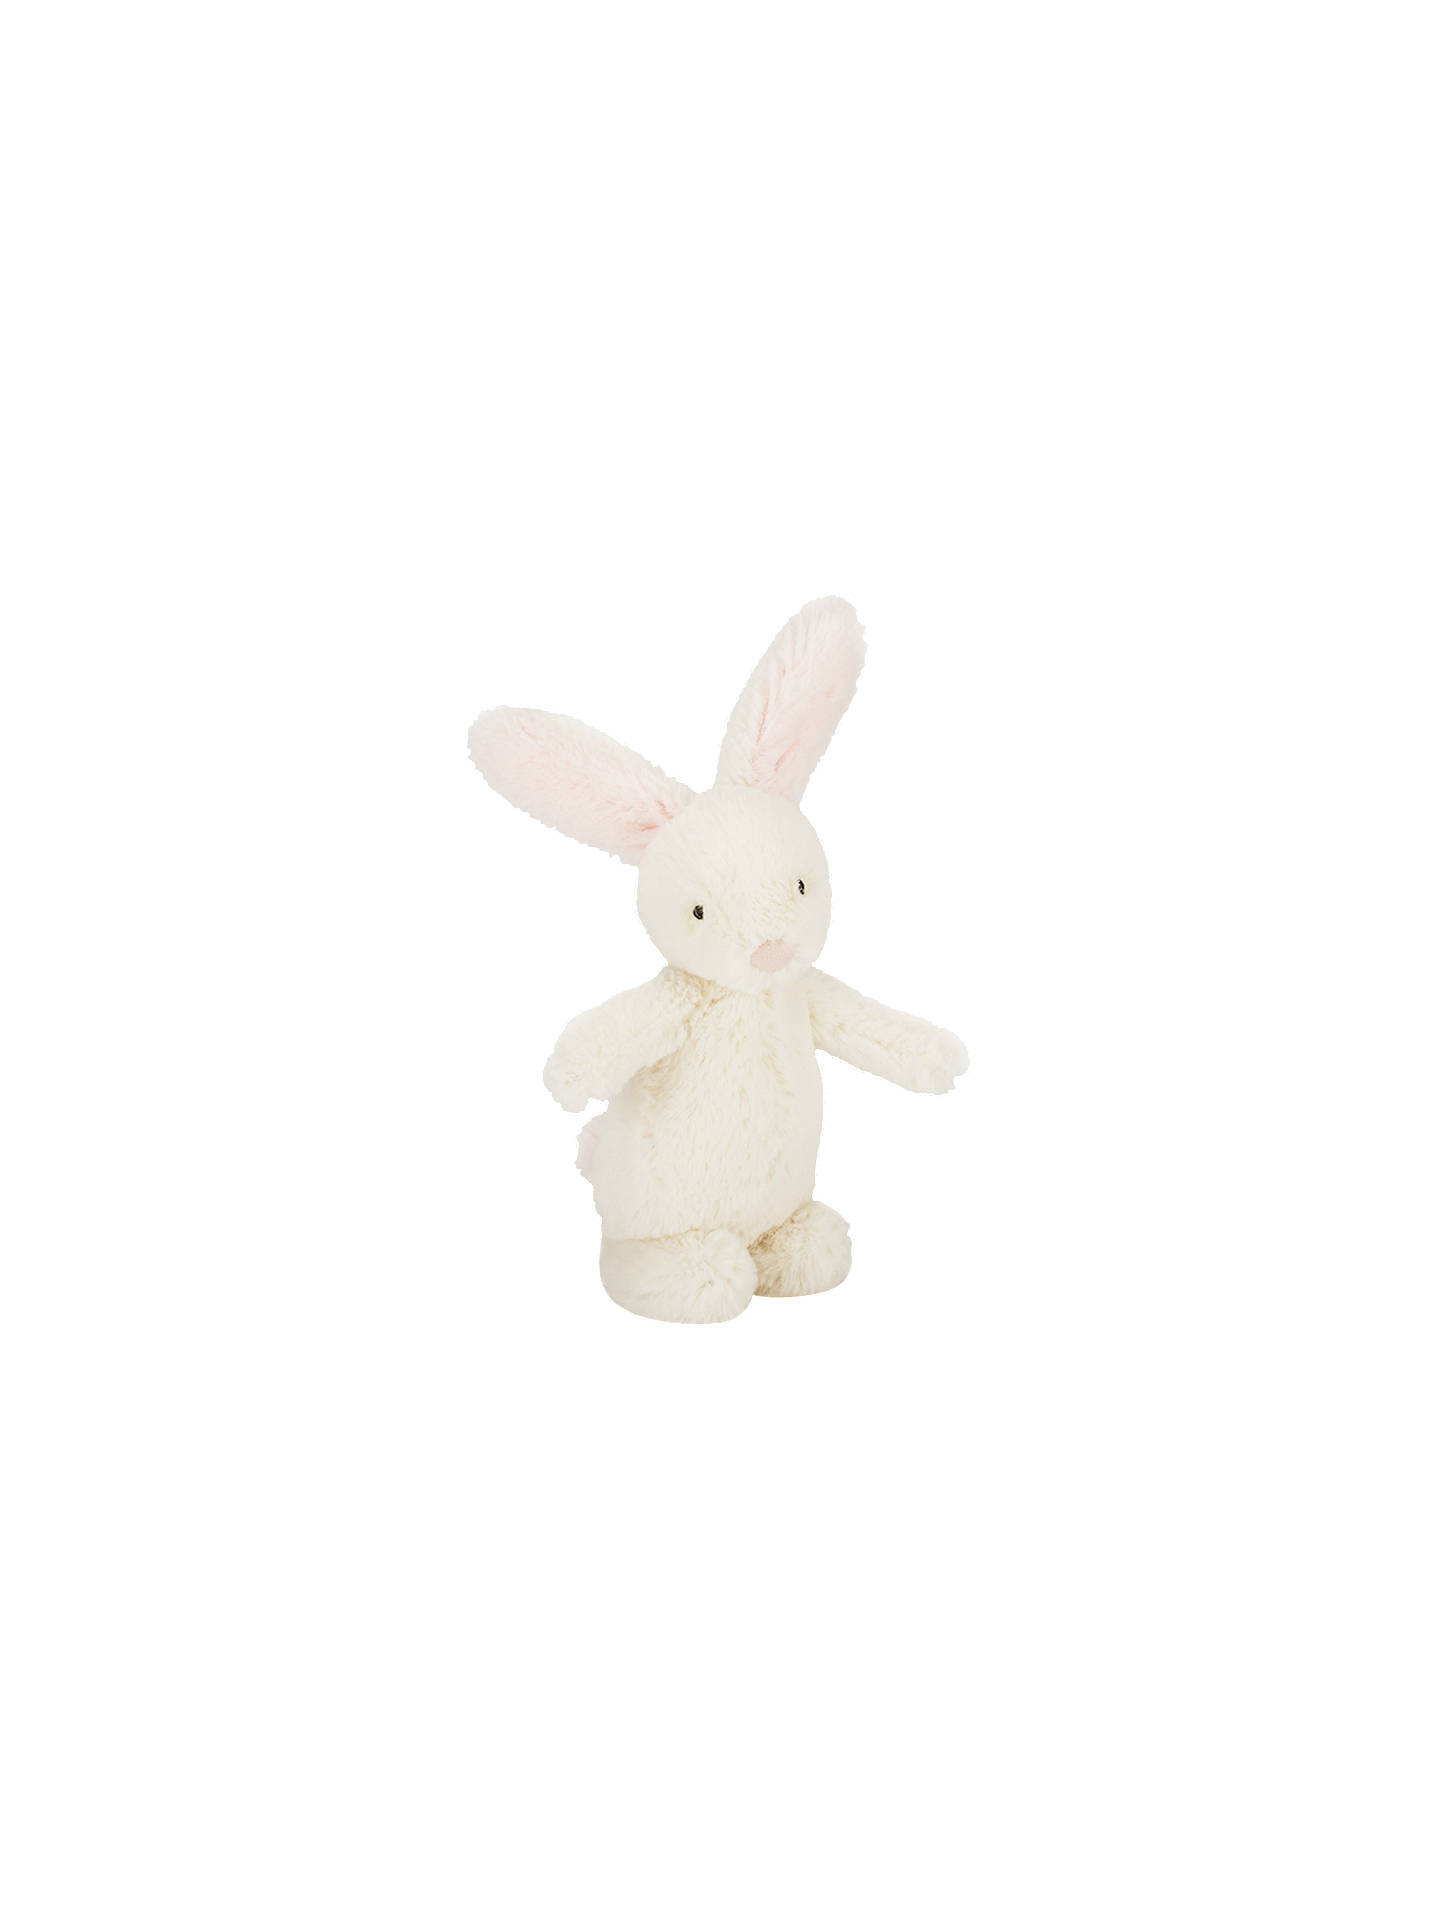 BuyJellycat Bobtail Bunny Rattle, Cream/Pink Online at johnlewis.com